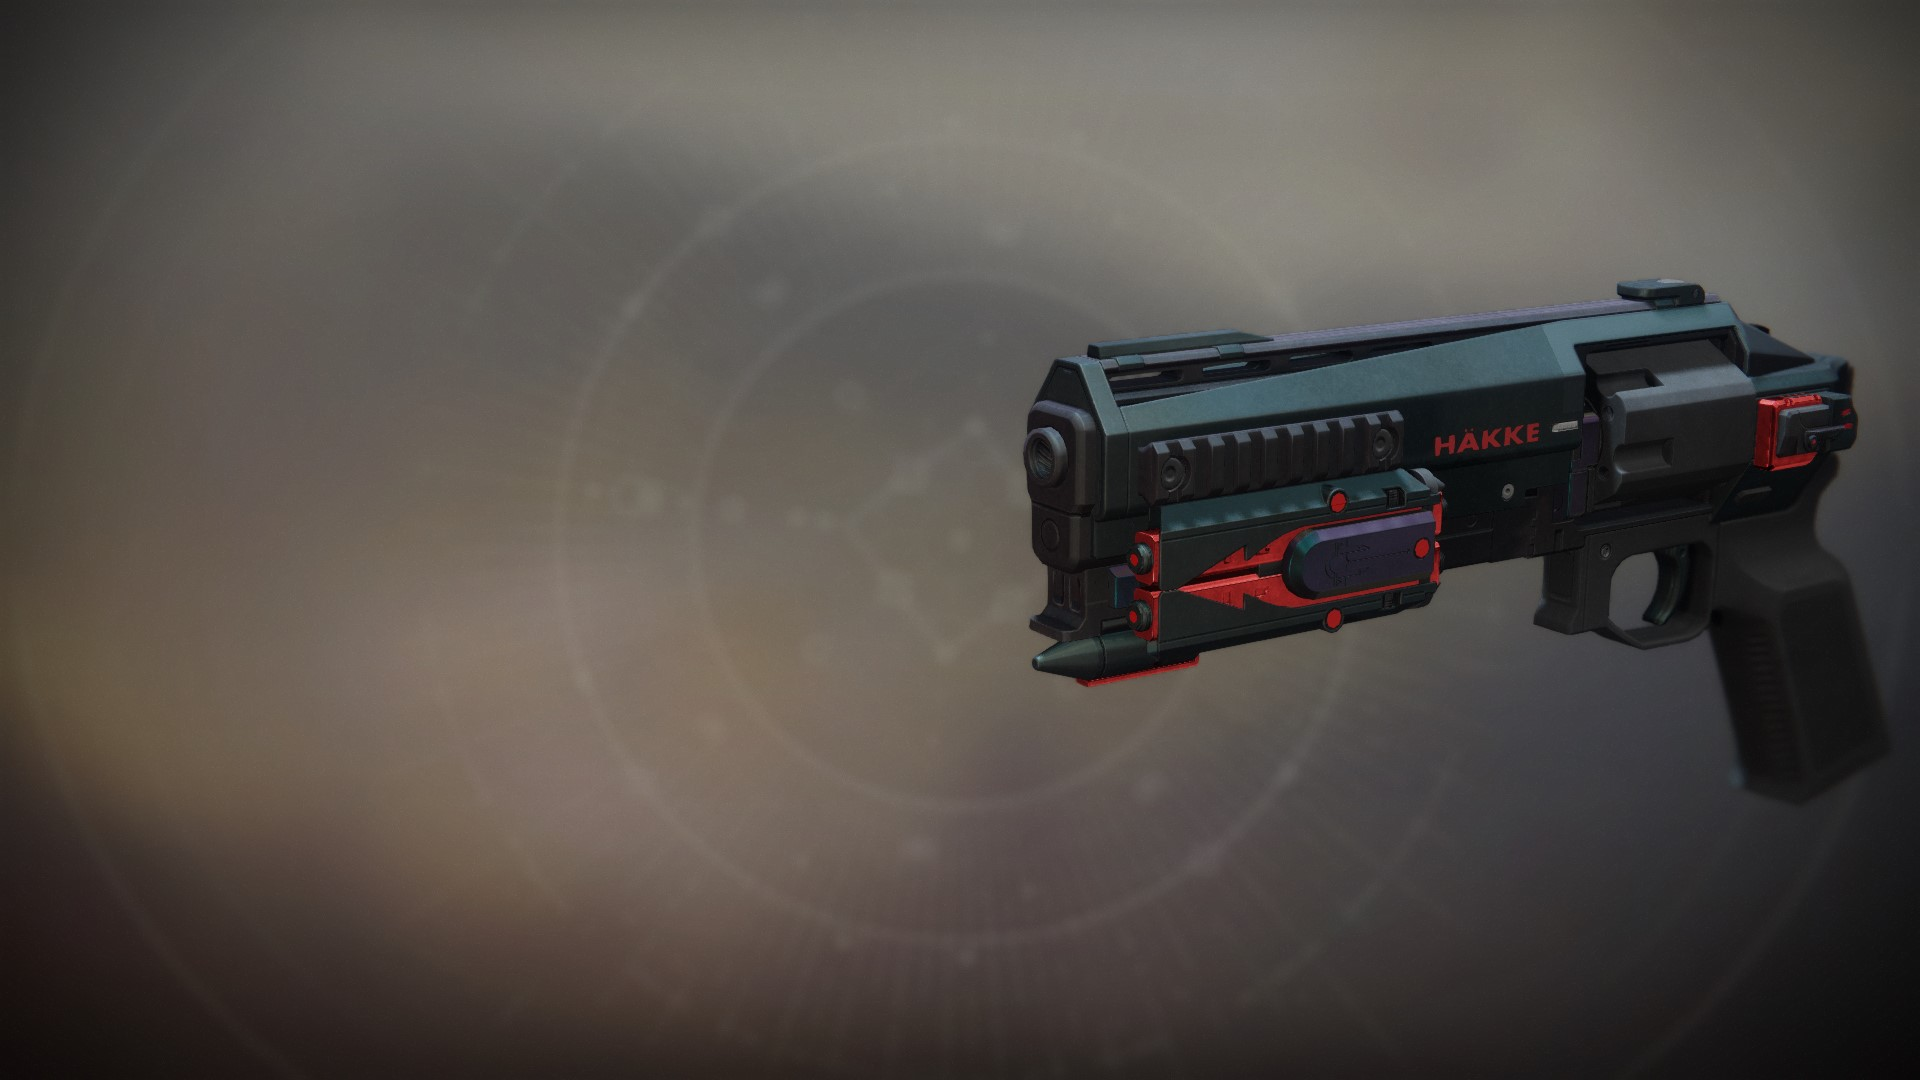 Bad News XF4354 - Destiny 2 Legendary Hand Cannon - Possible